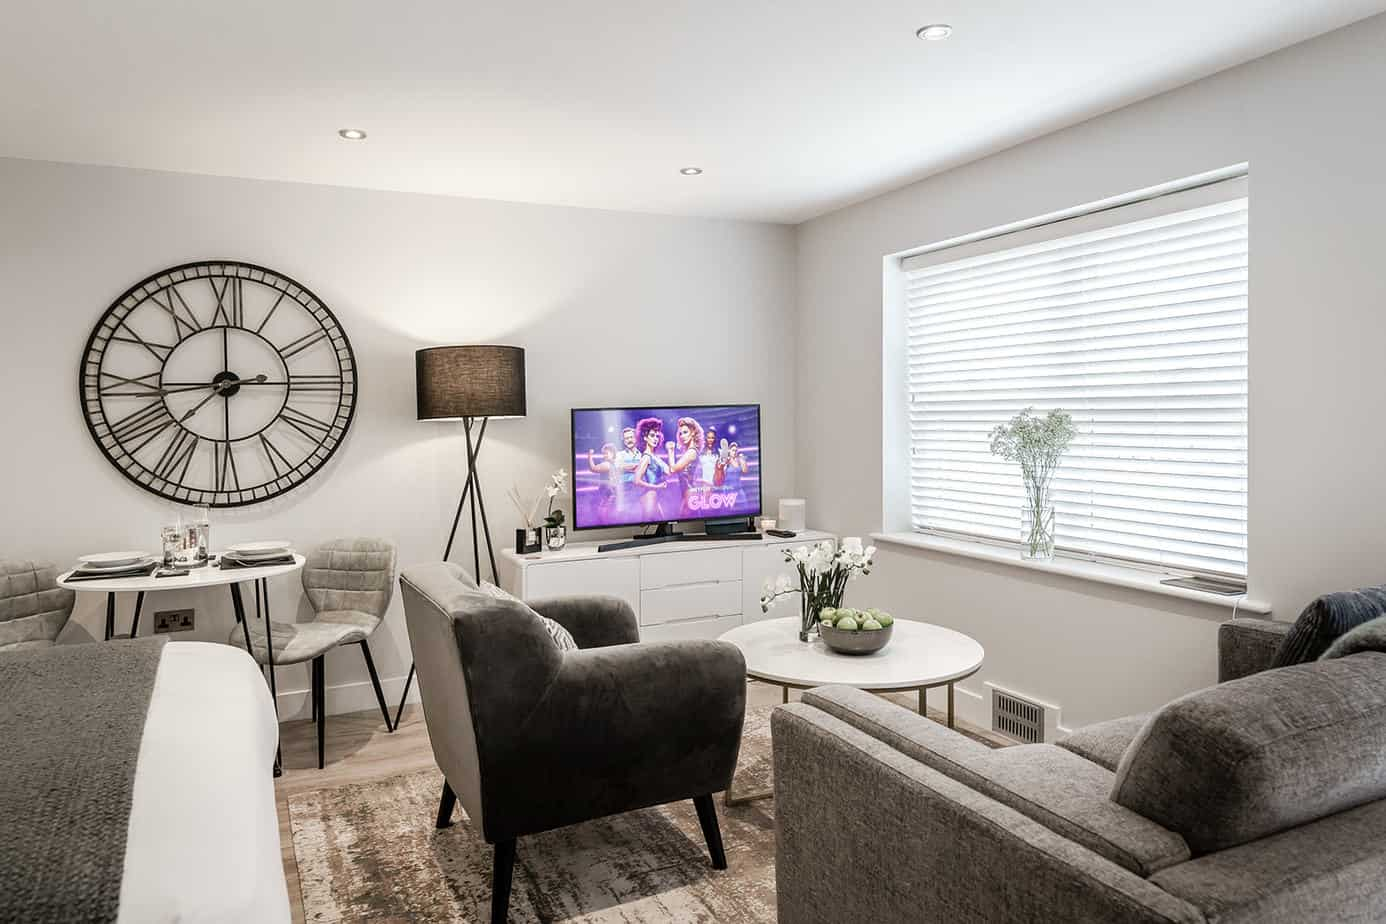 Tailored Stays Victoria Road with spacious living area complete with netflix, sonos and ipad